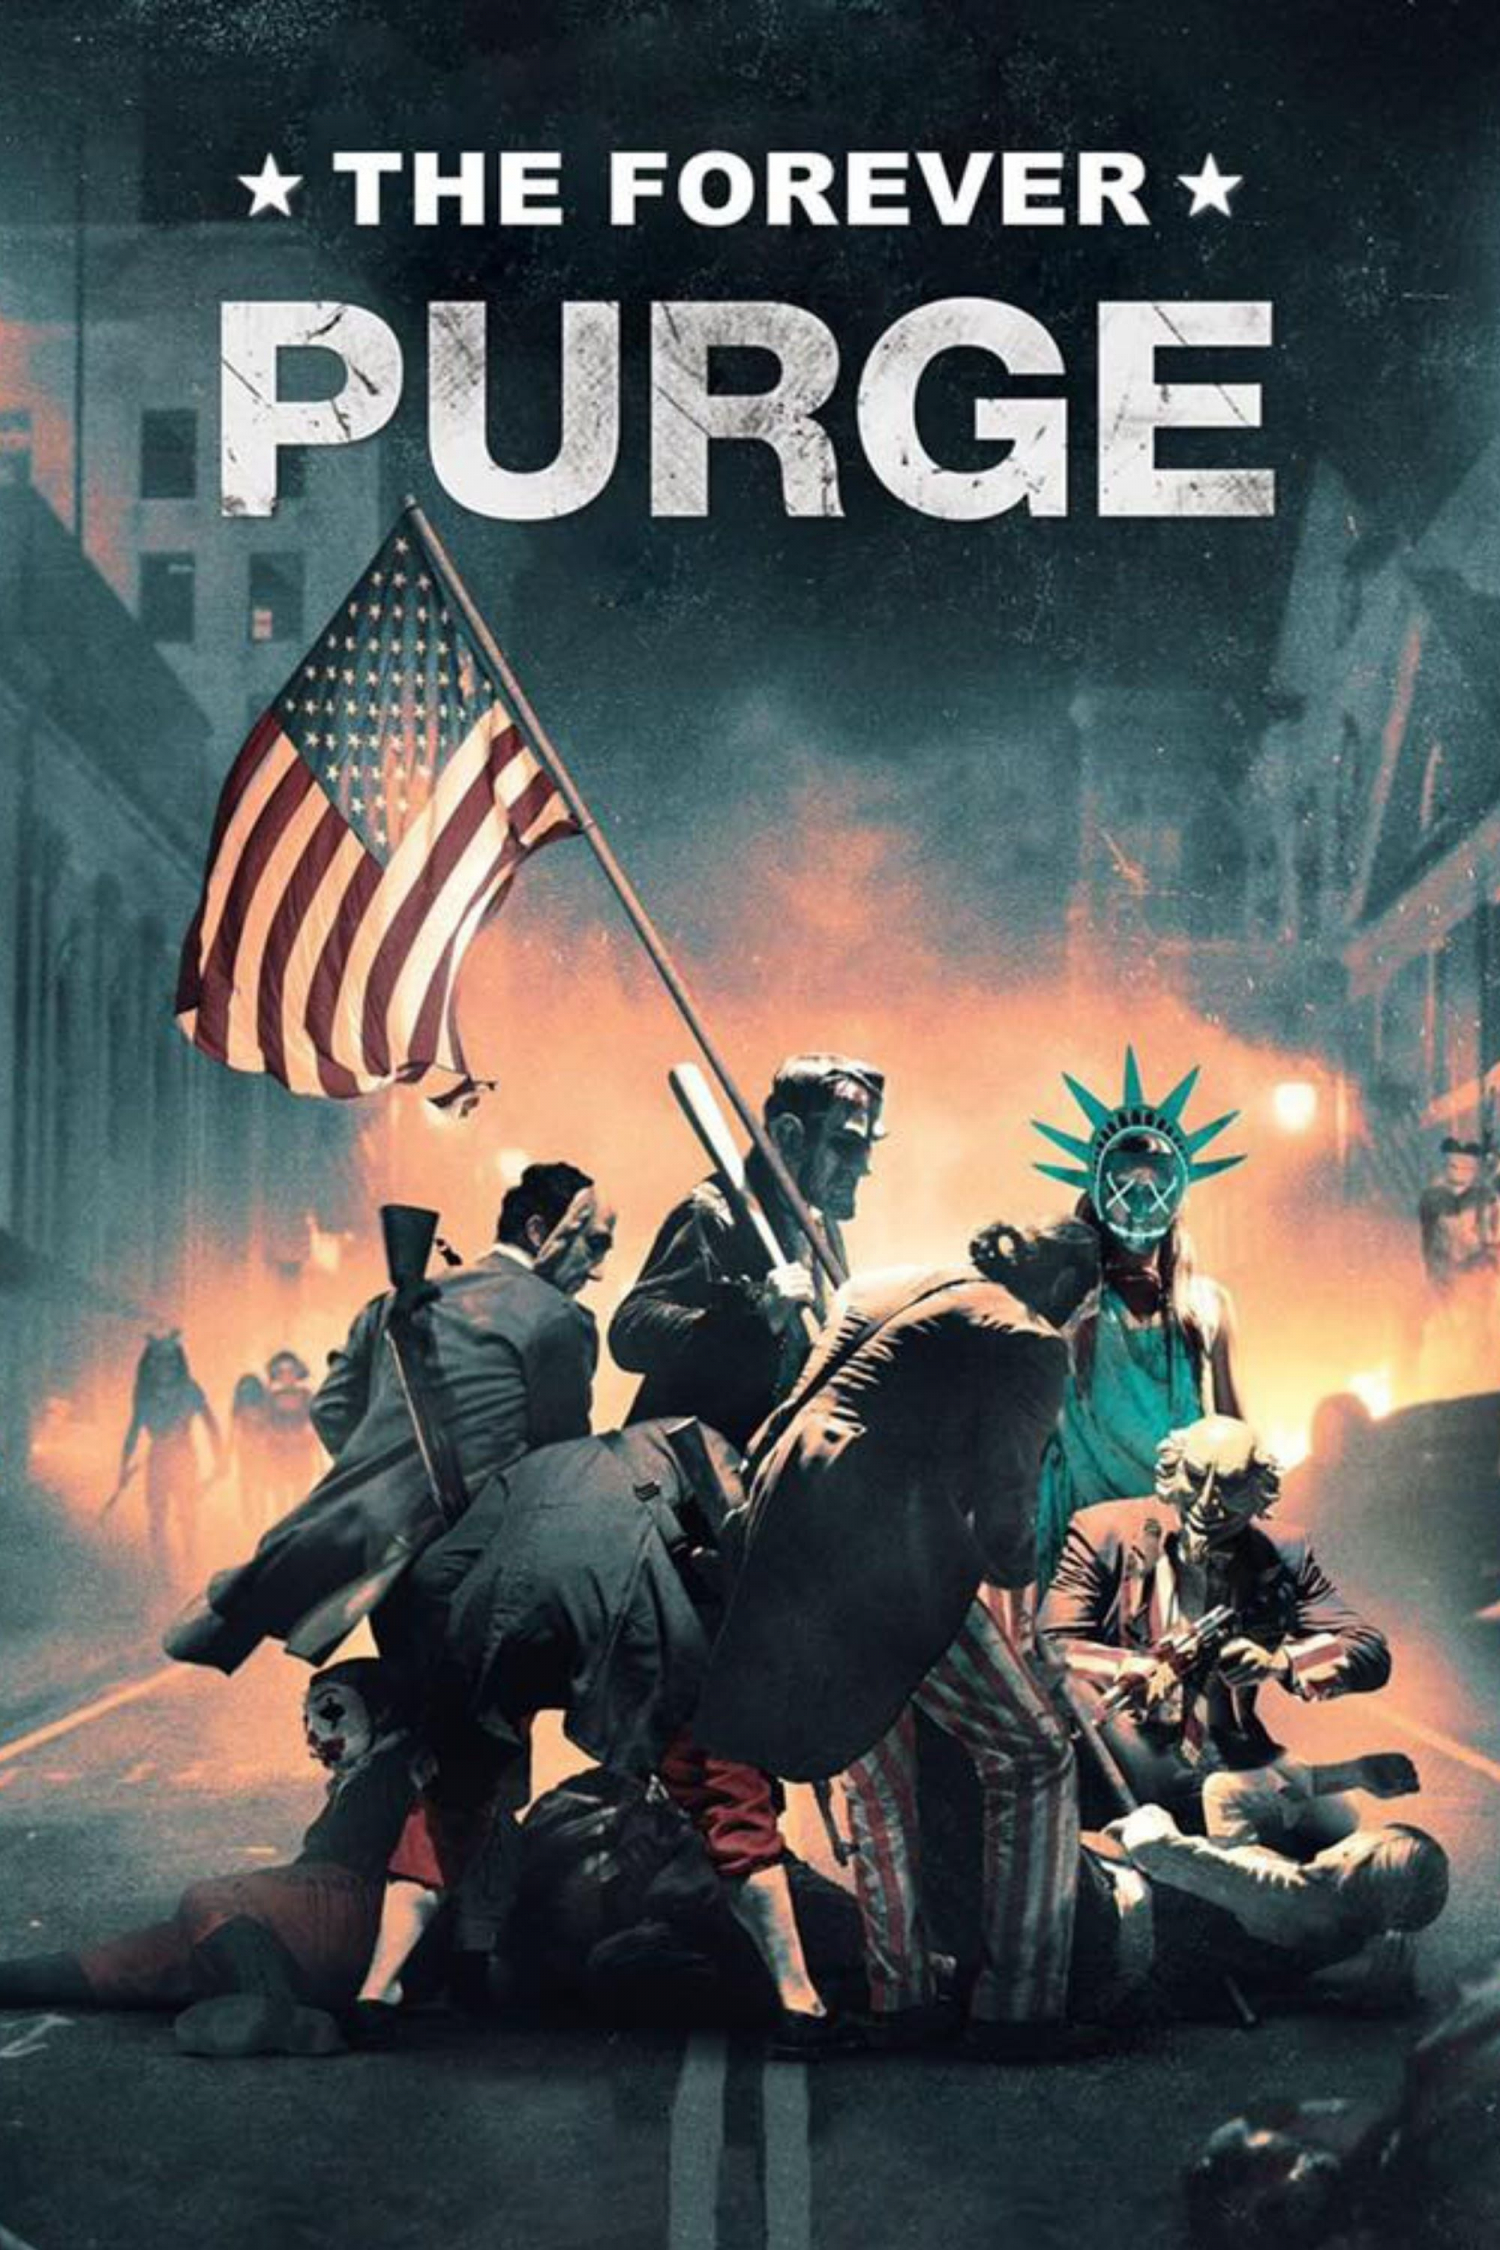 The Forever Purge movie poster from Buzz